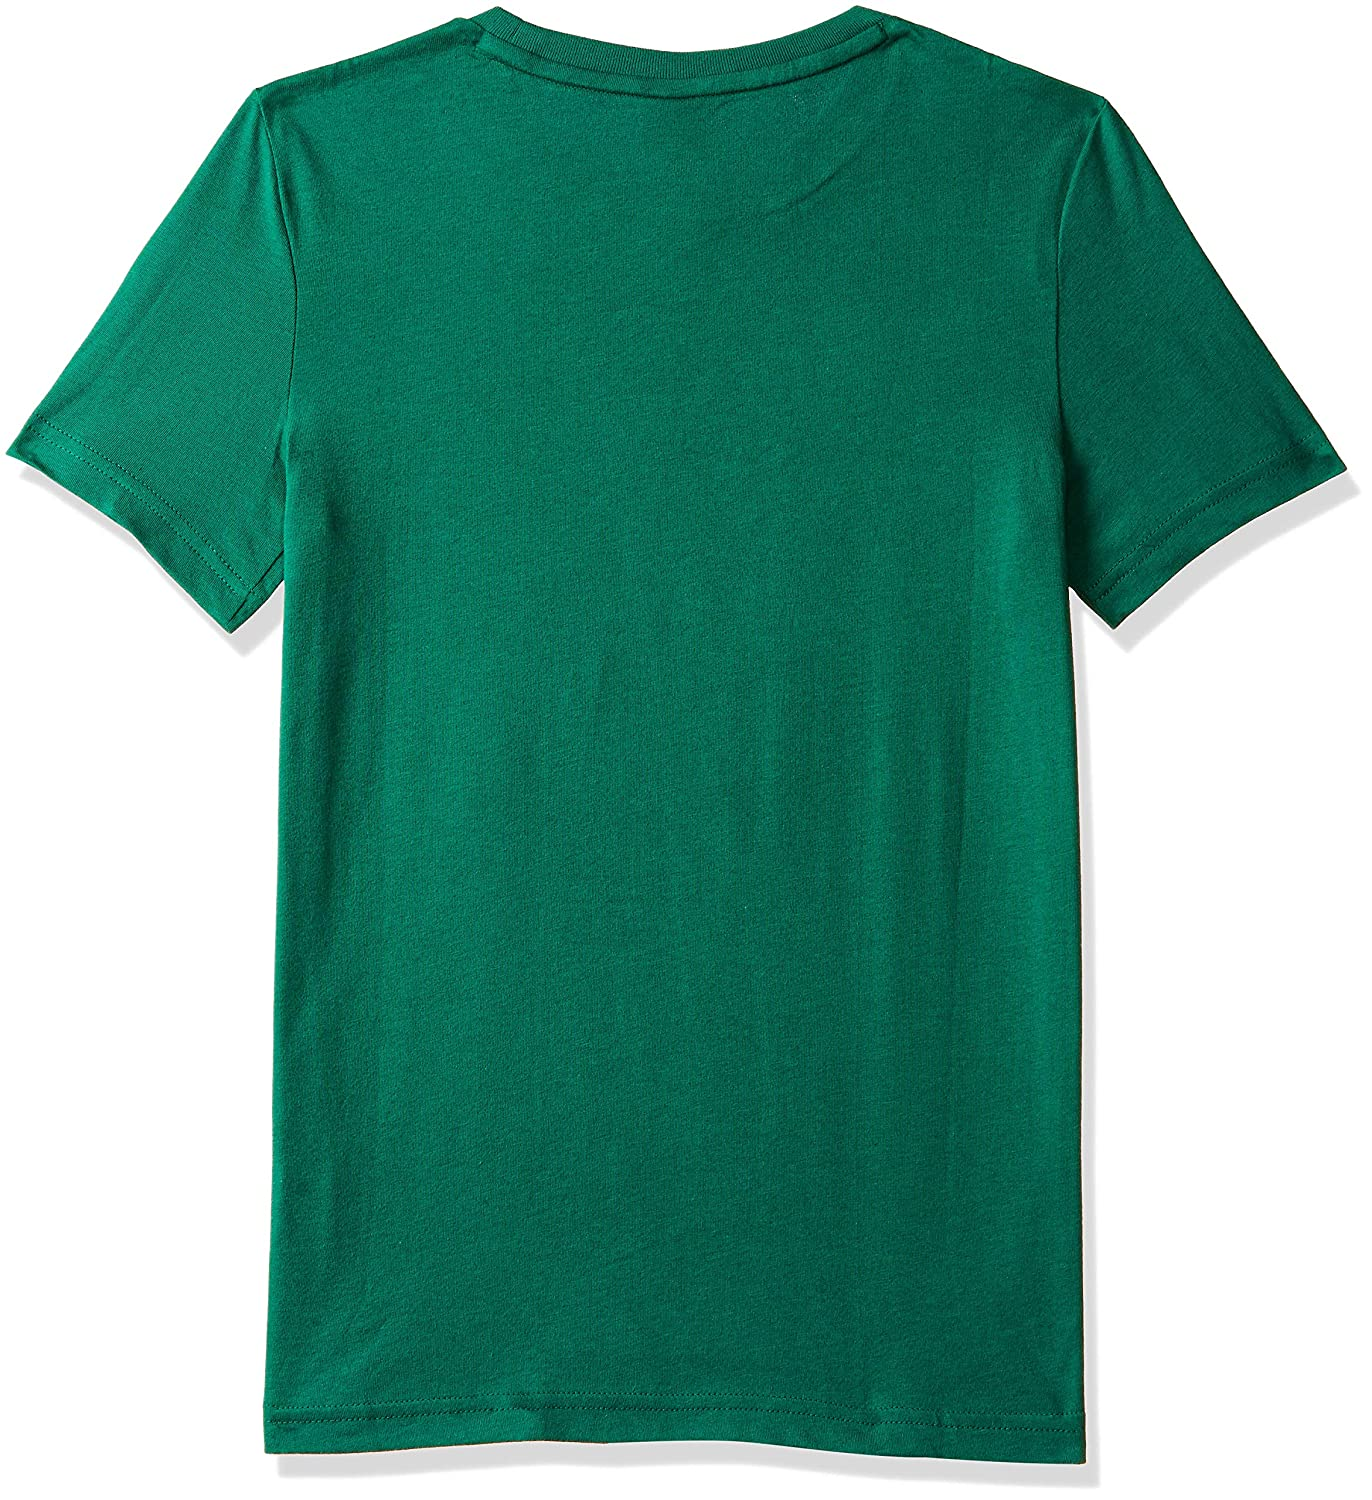 ff04a61757ad Puma Plain Regular fit Boys T-Shirts  Amazon.in  Clothing   Accessories